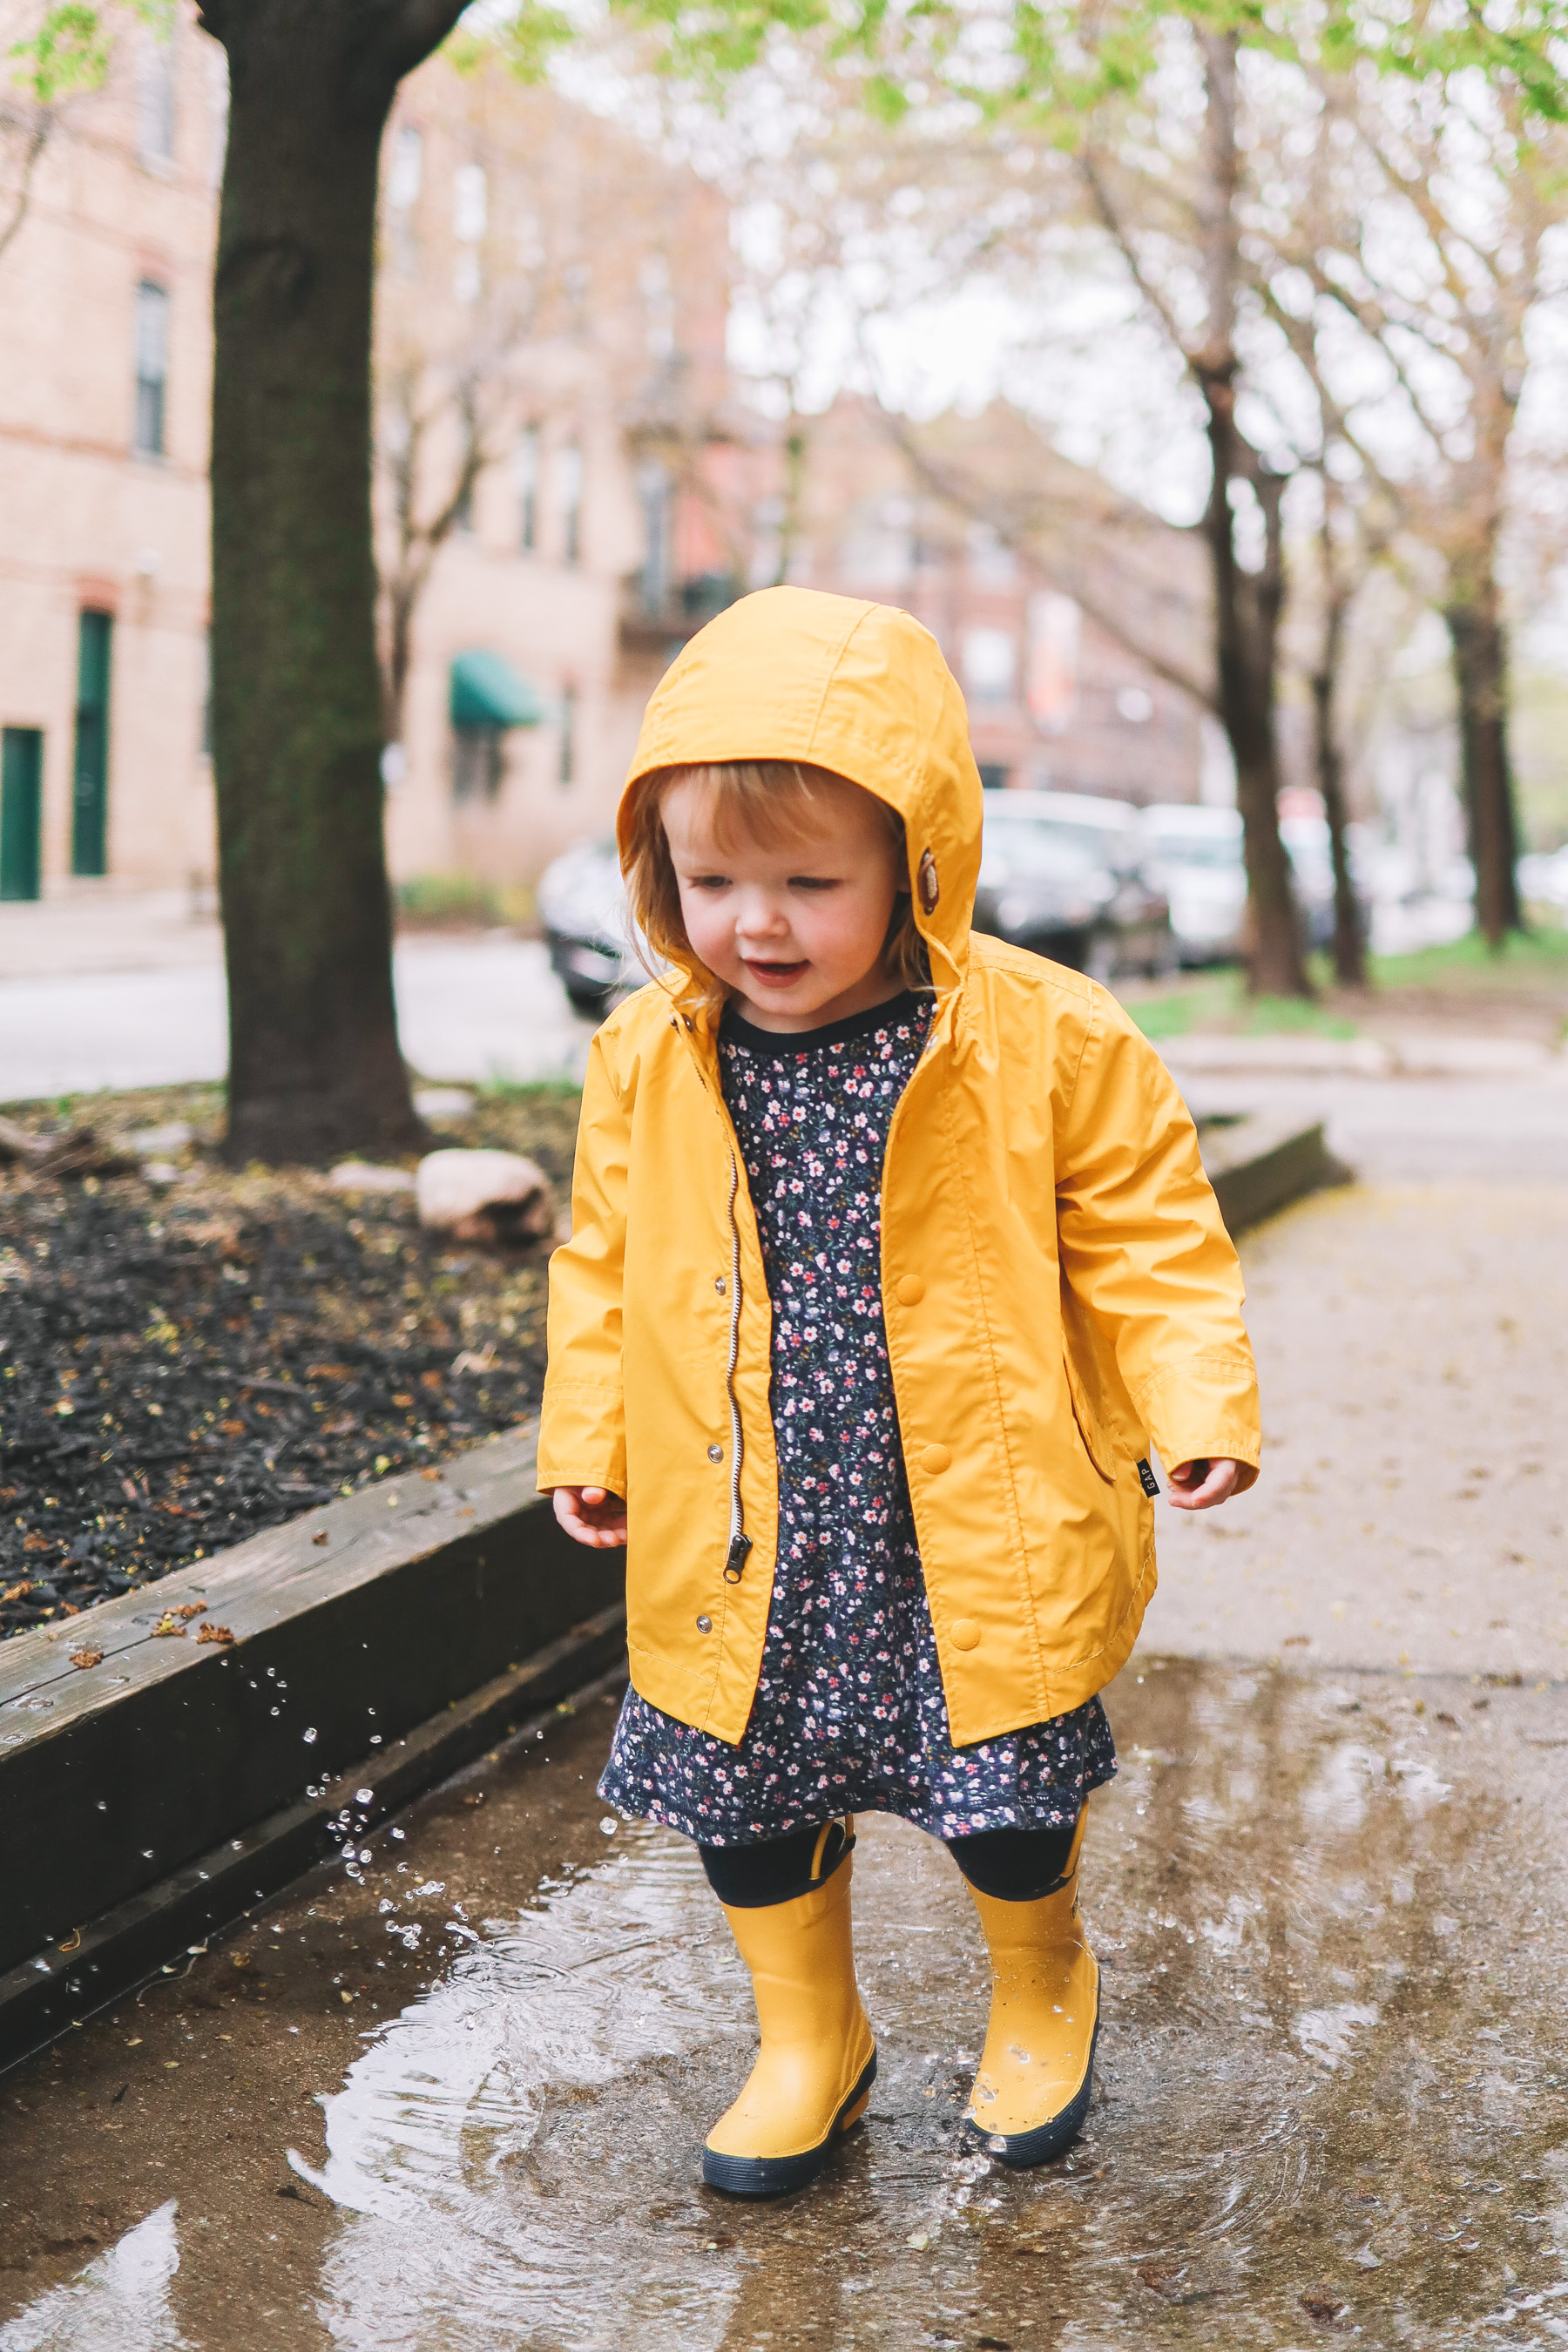 Toddler Rainy Day Outfit